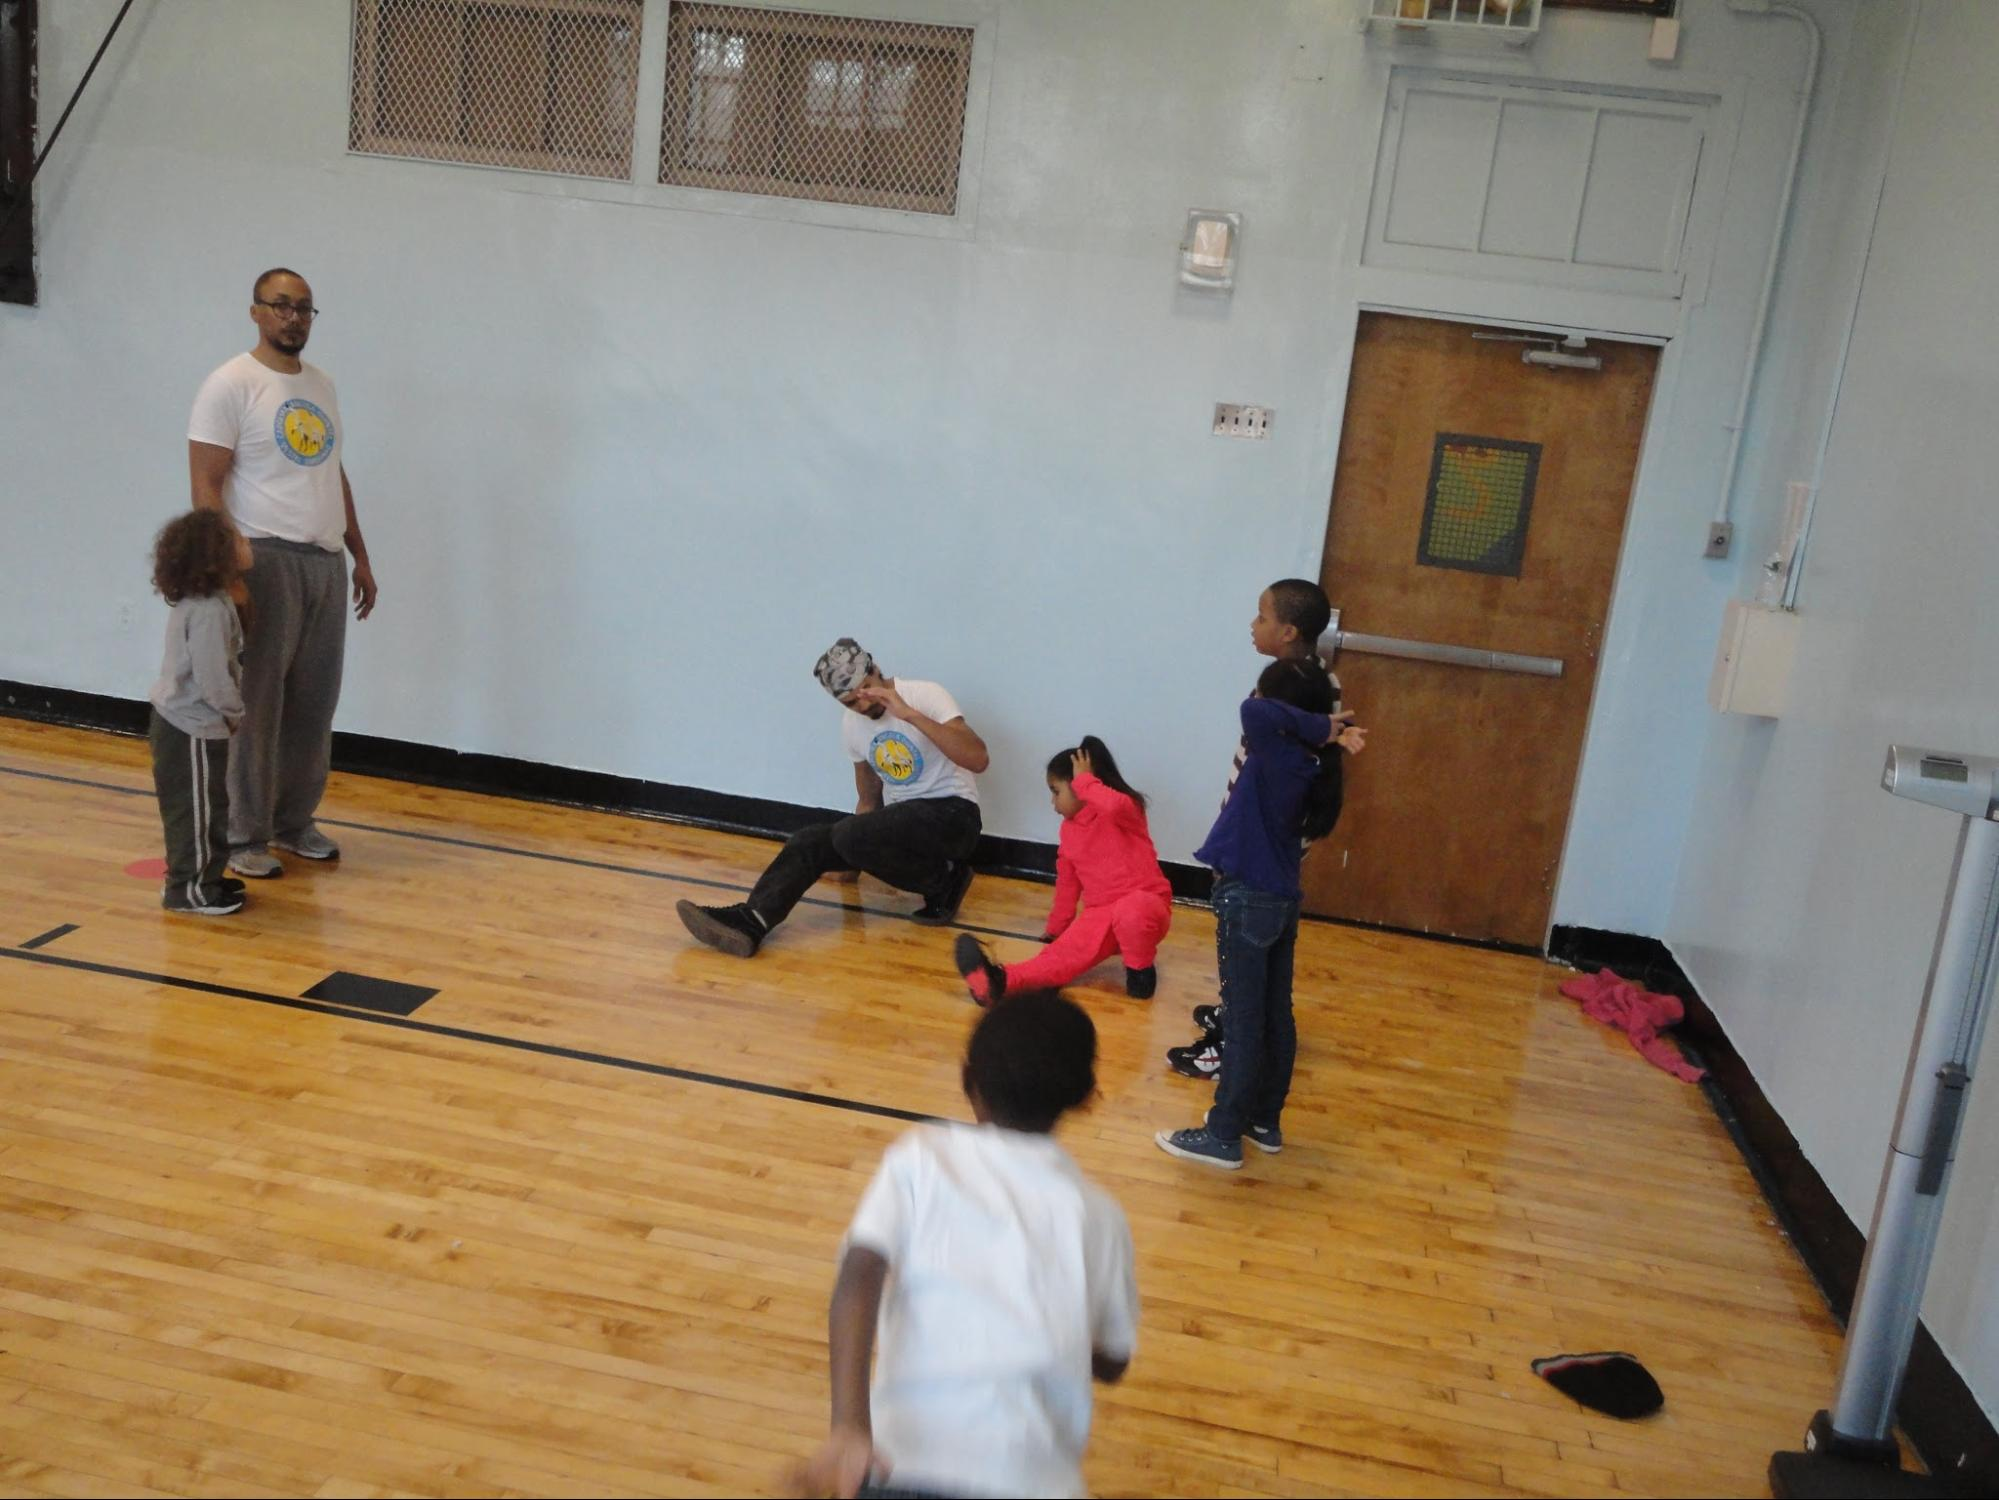 ABA teaching artist teaches role, a whole body roll important in capoeira floor movements.